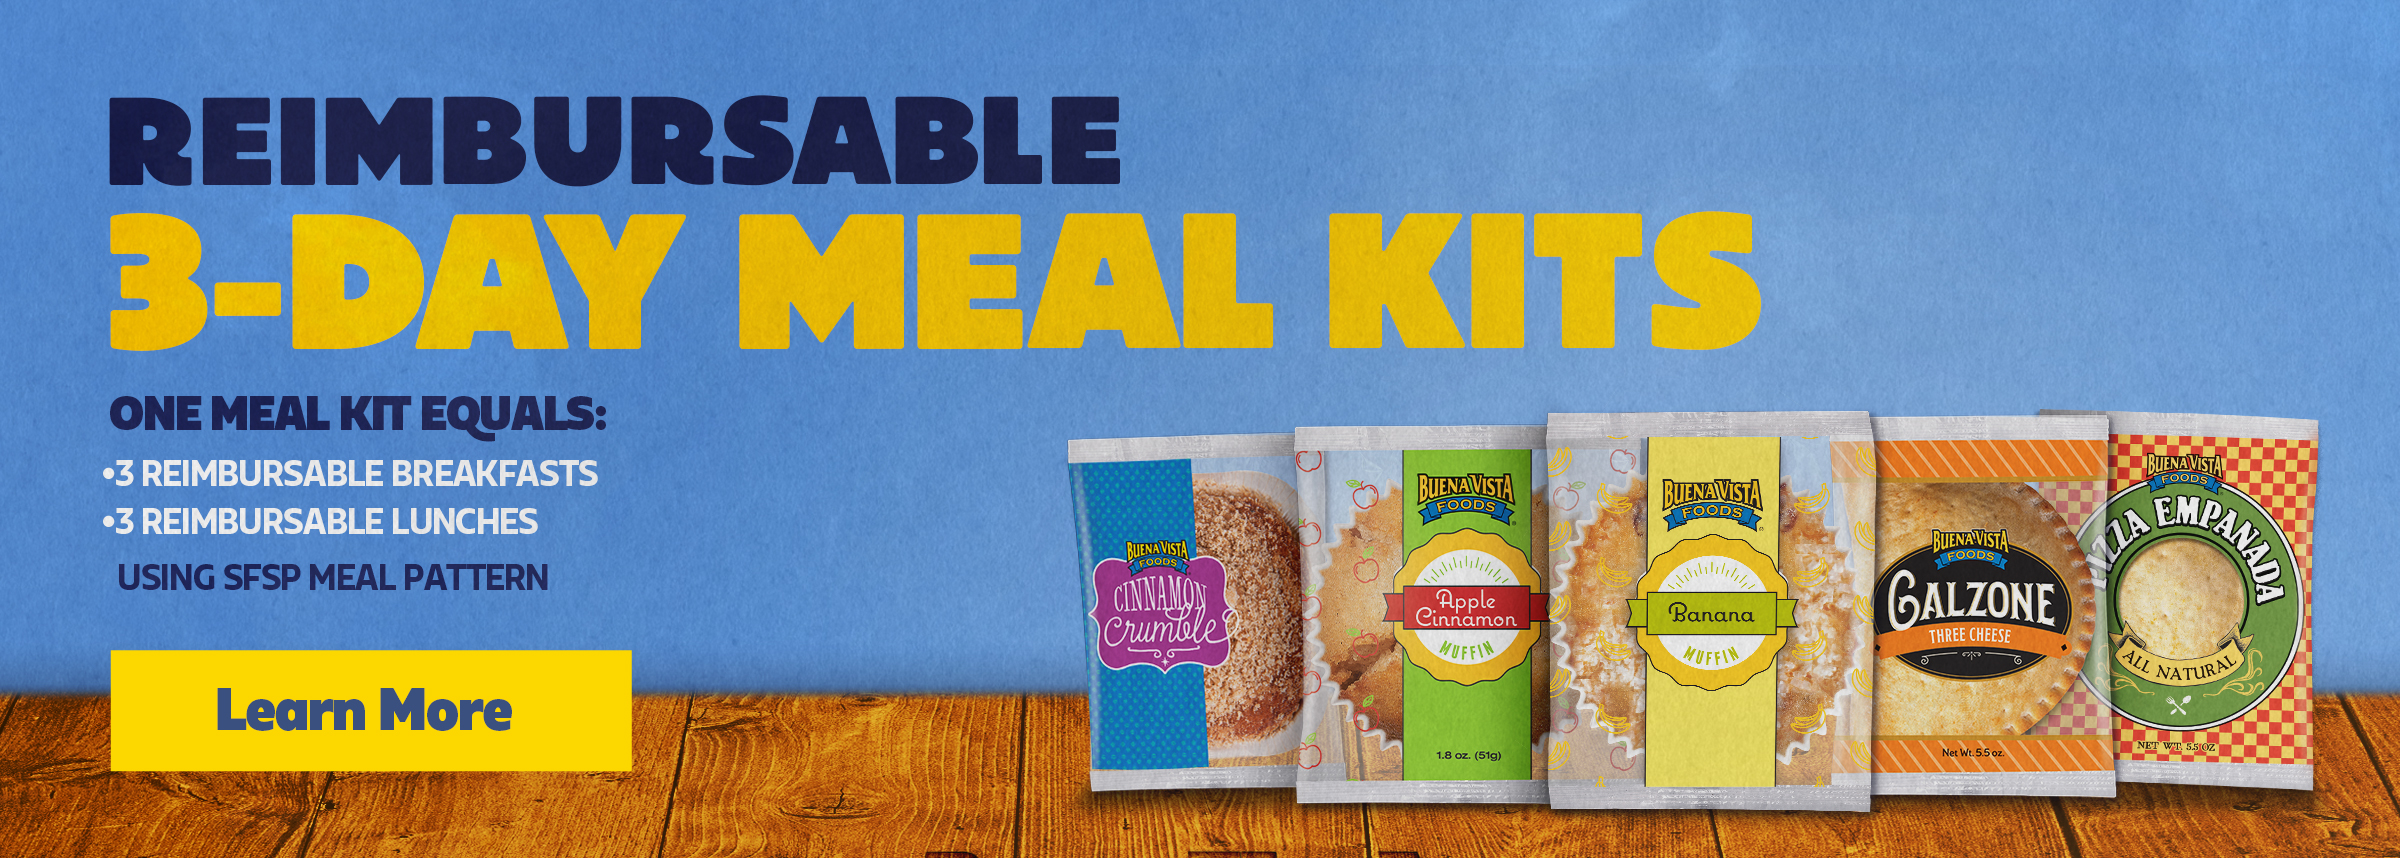 reimbursable meal kits